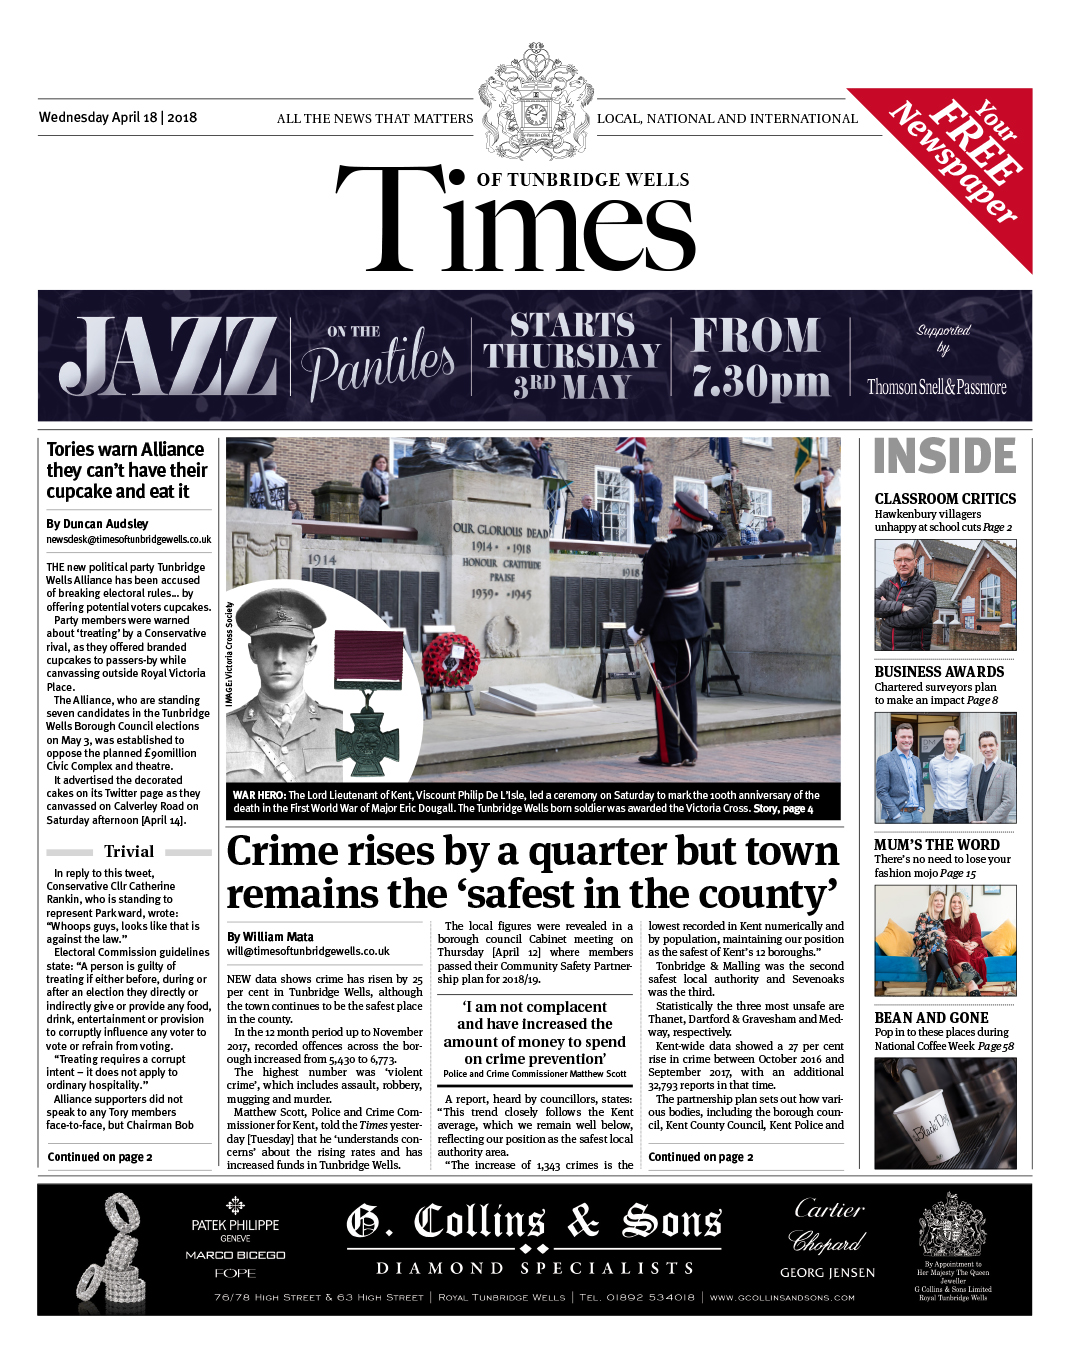 Read the Times of Tunbridge Wells 18th April 2018